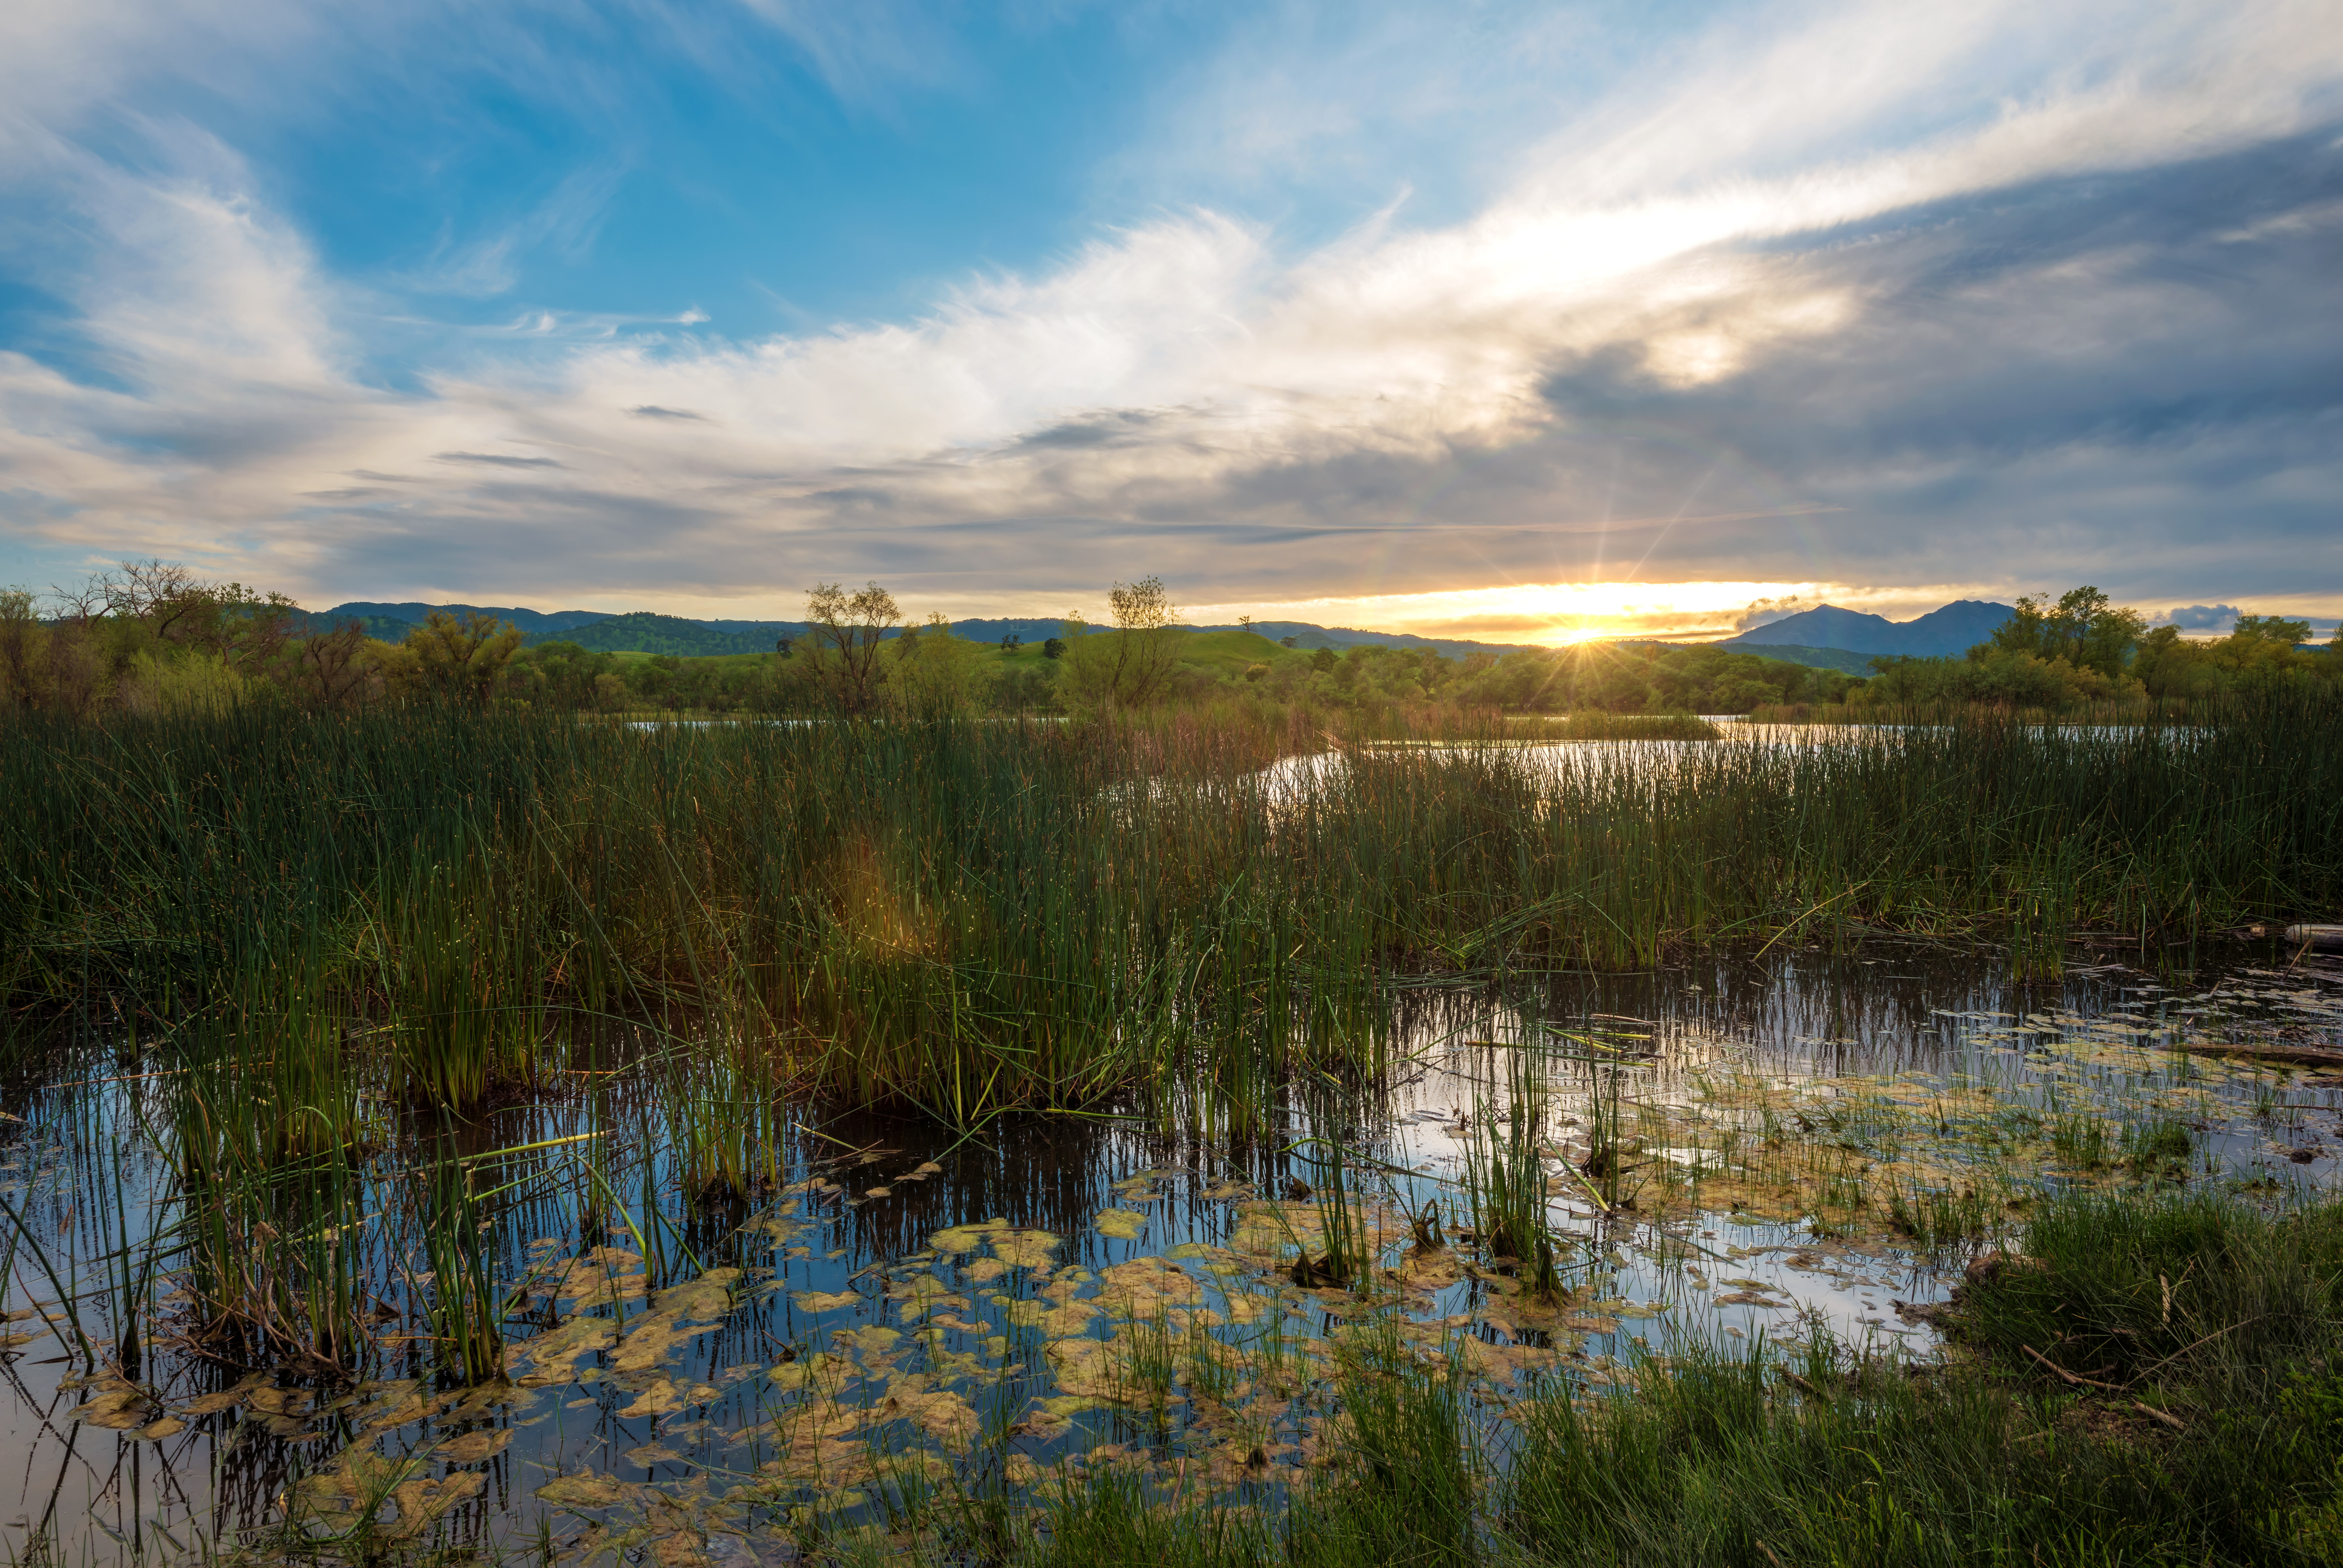 setting sun over mountains and reedy wetlands